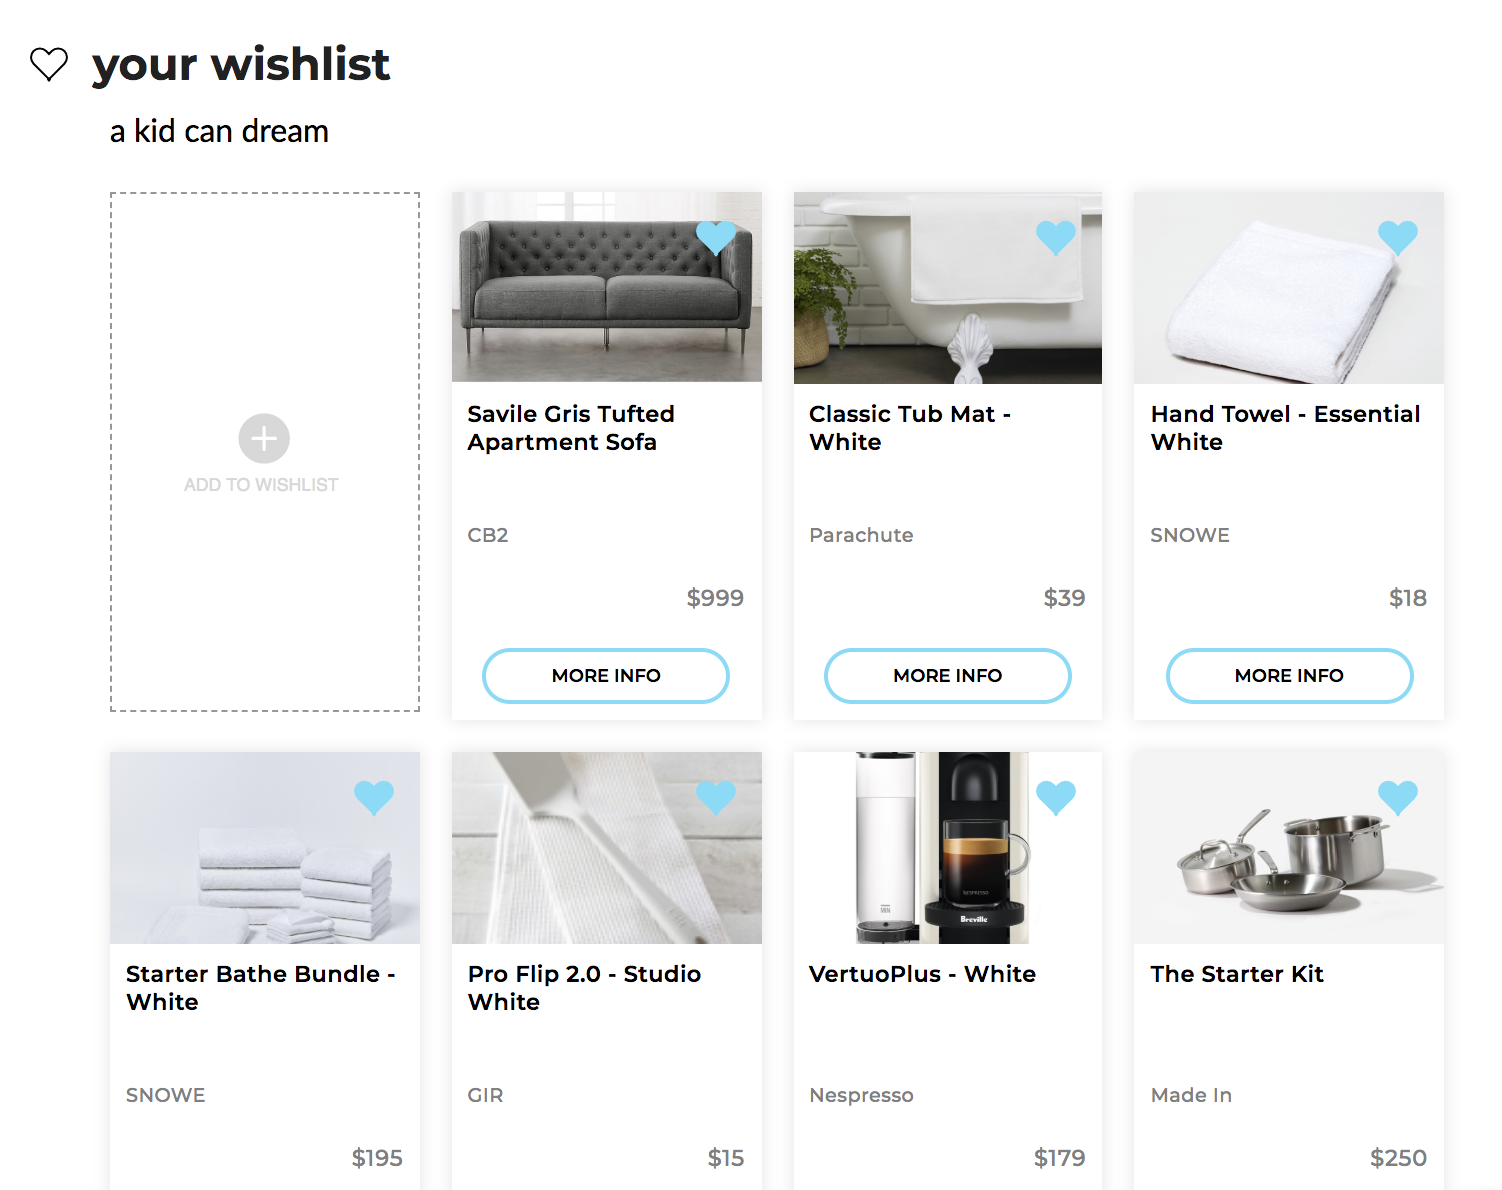 adulting, but make it fun - build a wishlist of your favorite real world products and services